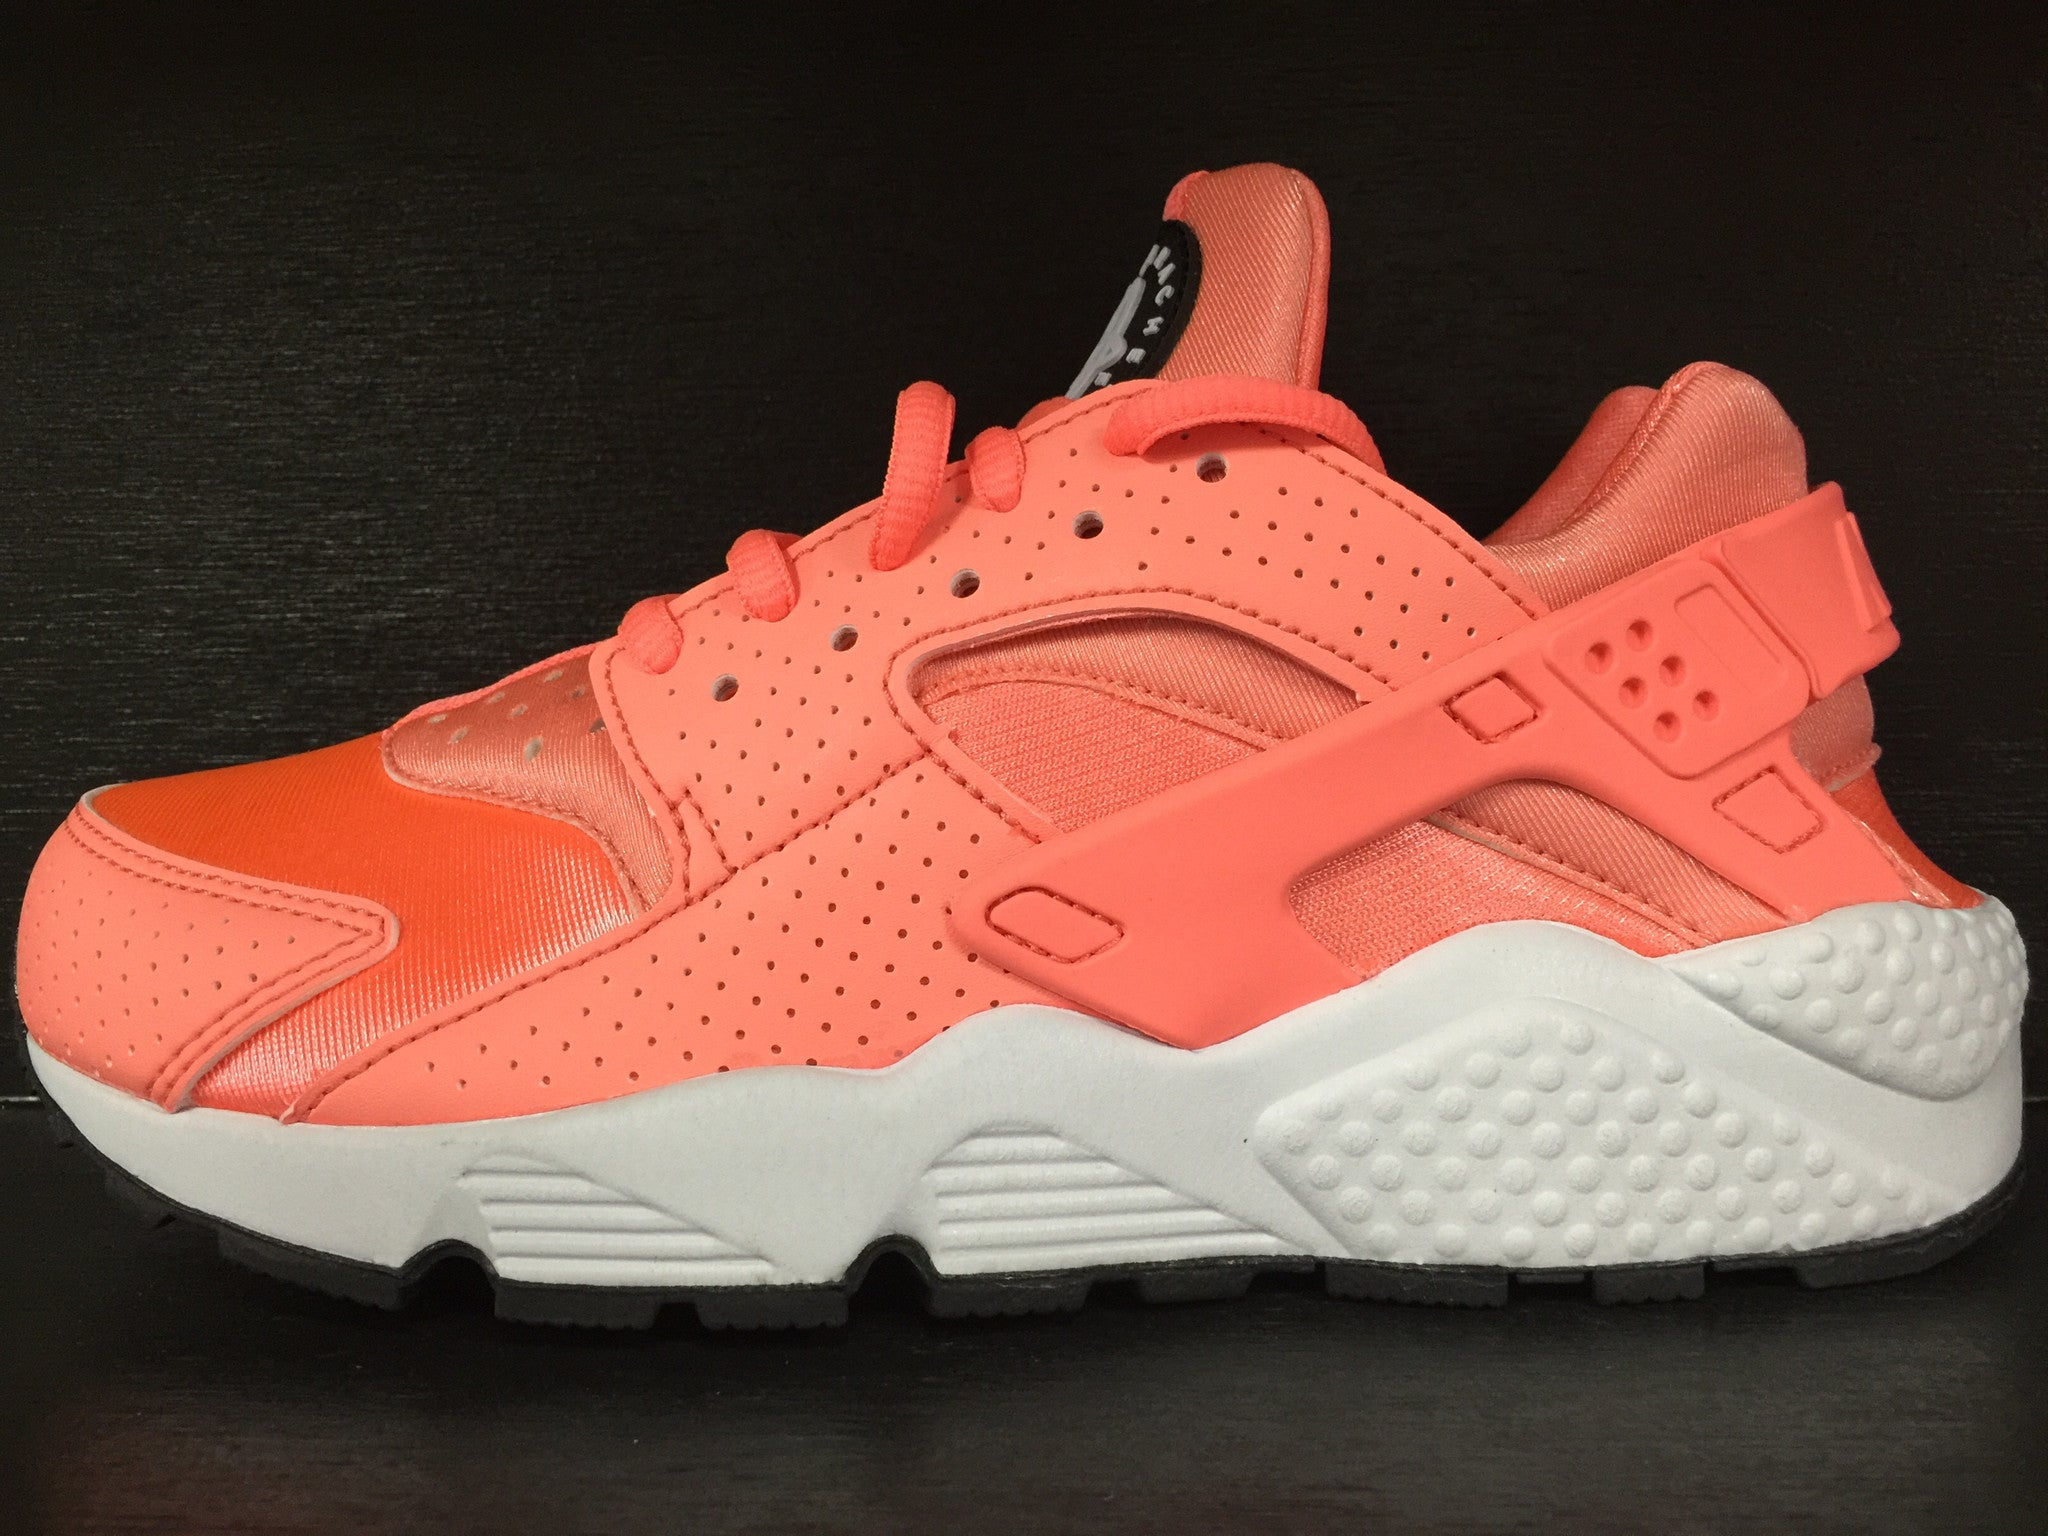 WMNS Air Huarache Run 'Atomic Pink'